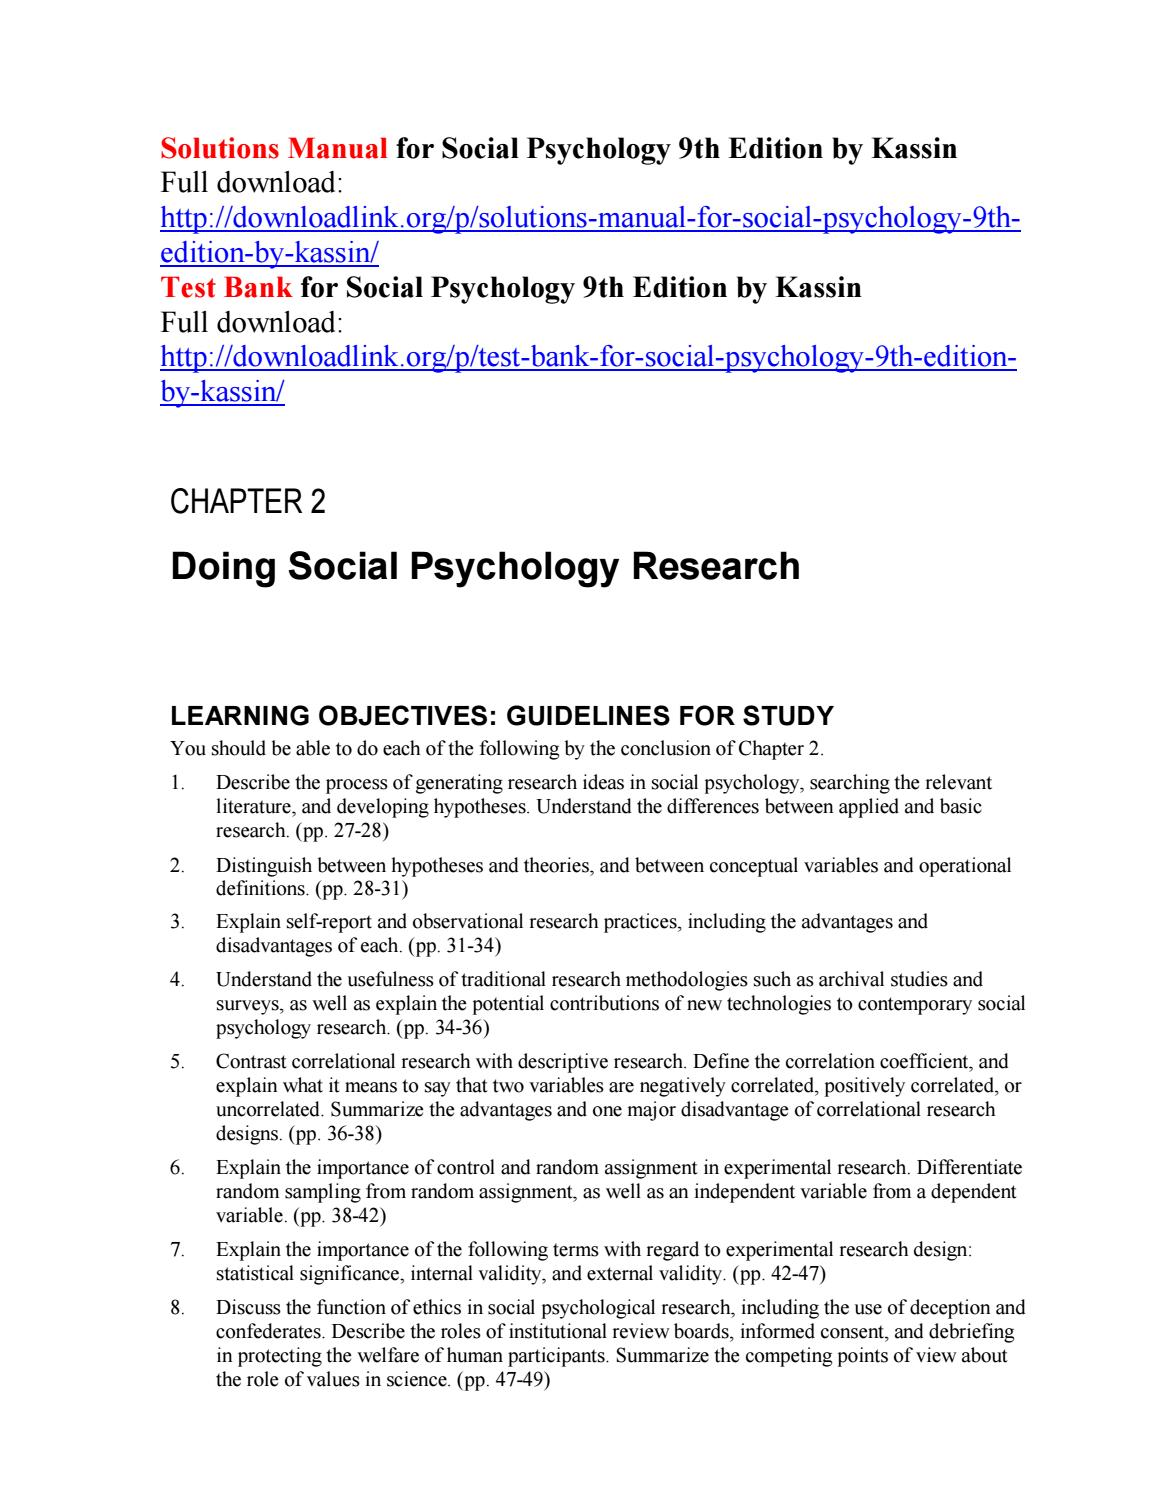 Solutions manual for social psychology 9th edition by kassin by Nickelr111  - issuu